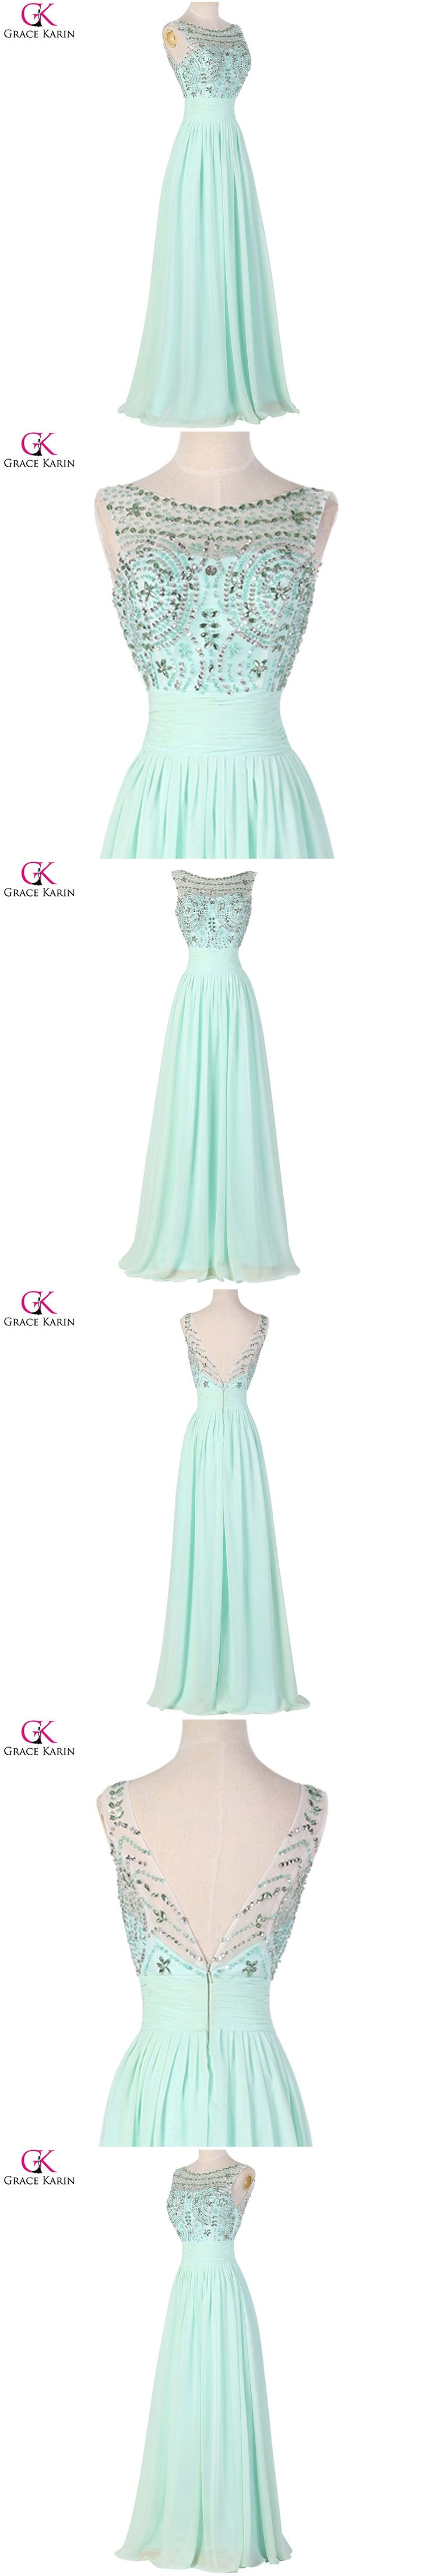 Grace Karin Turquoise Chiffon Sexy Backless Evening Dresses Long Party Prom Dresses 2017Abendkleider Formal Dinner Dress A7532